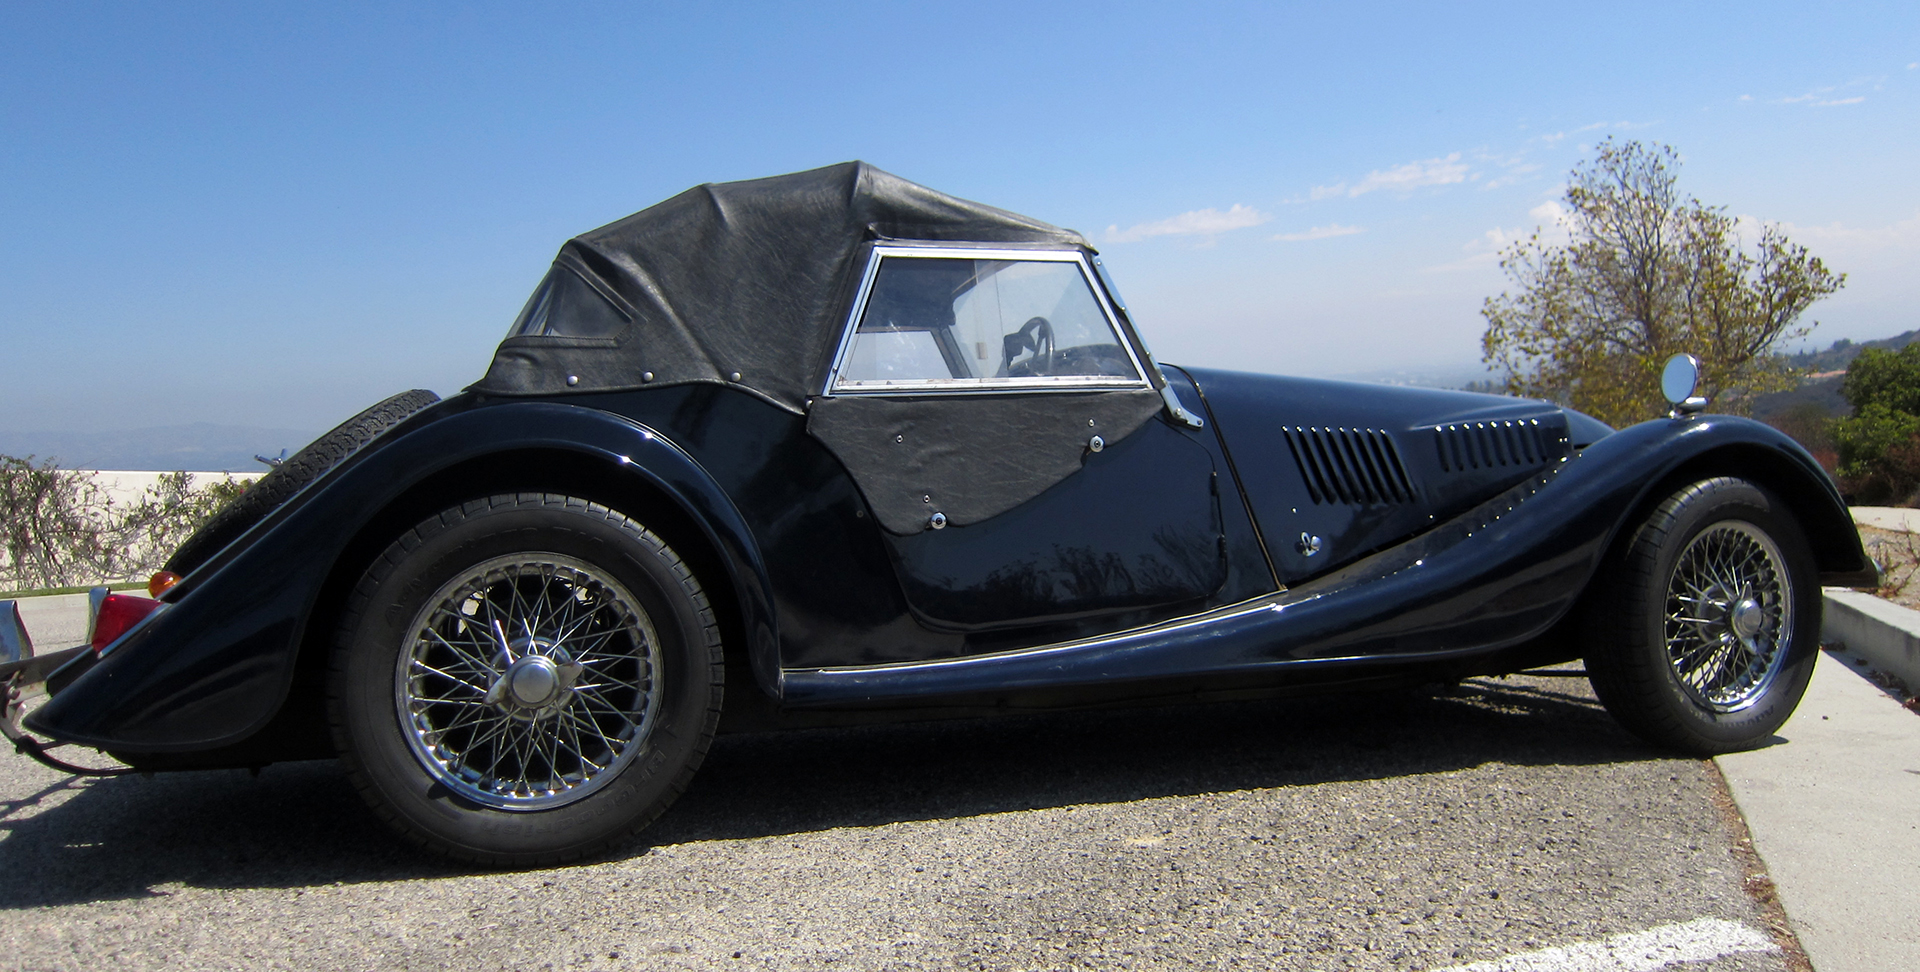 4×4 For Sale >> 1965 Morgan 4 4 With Cosworth Bda For Sale 40 000